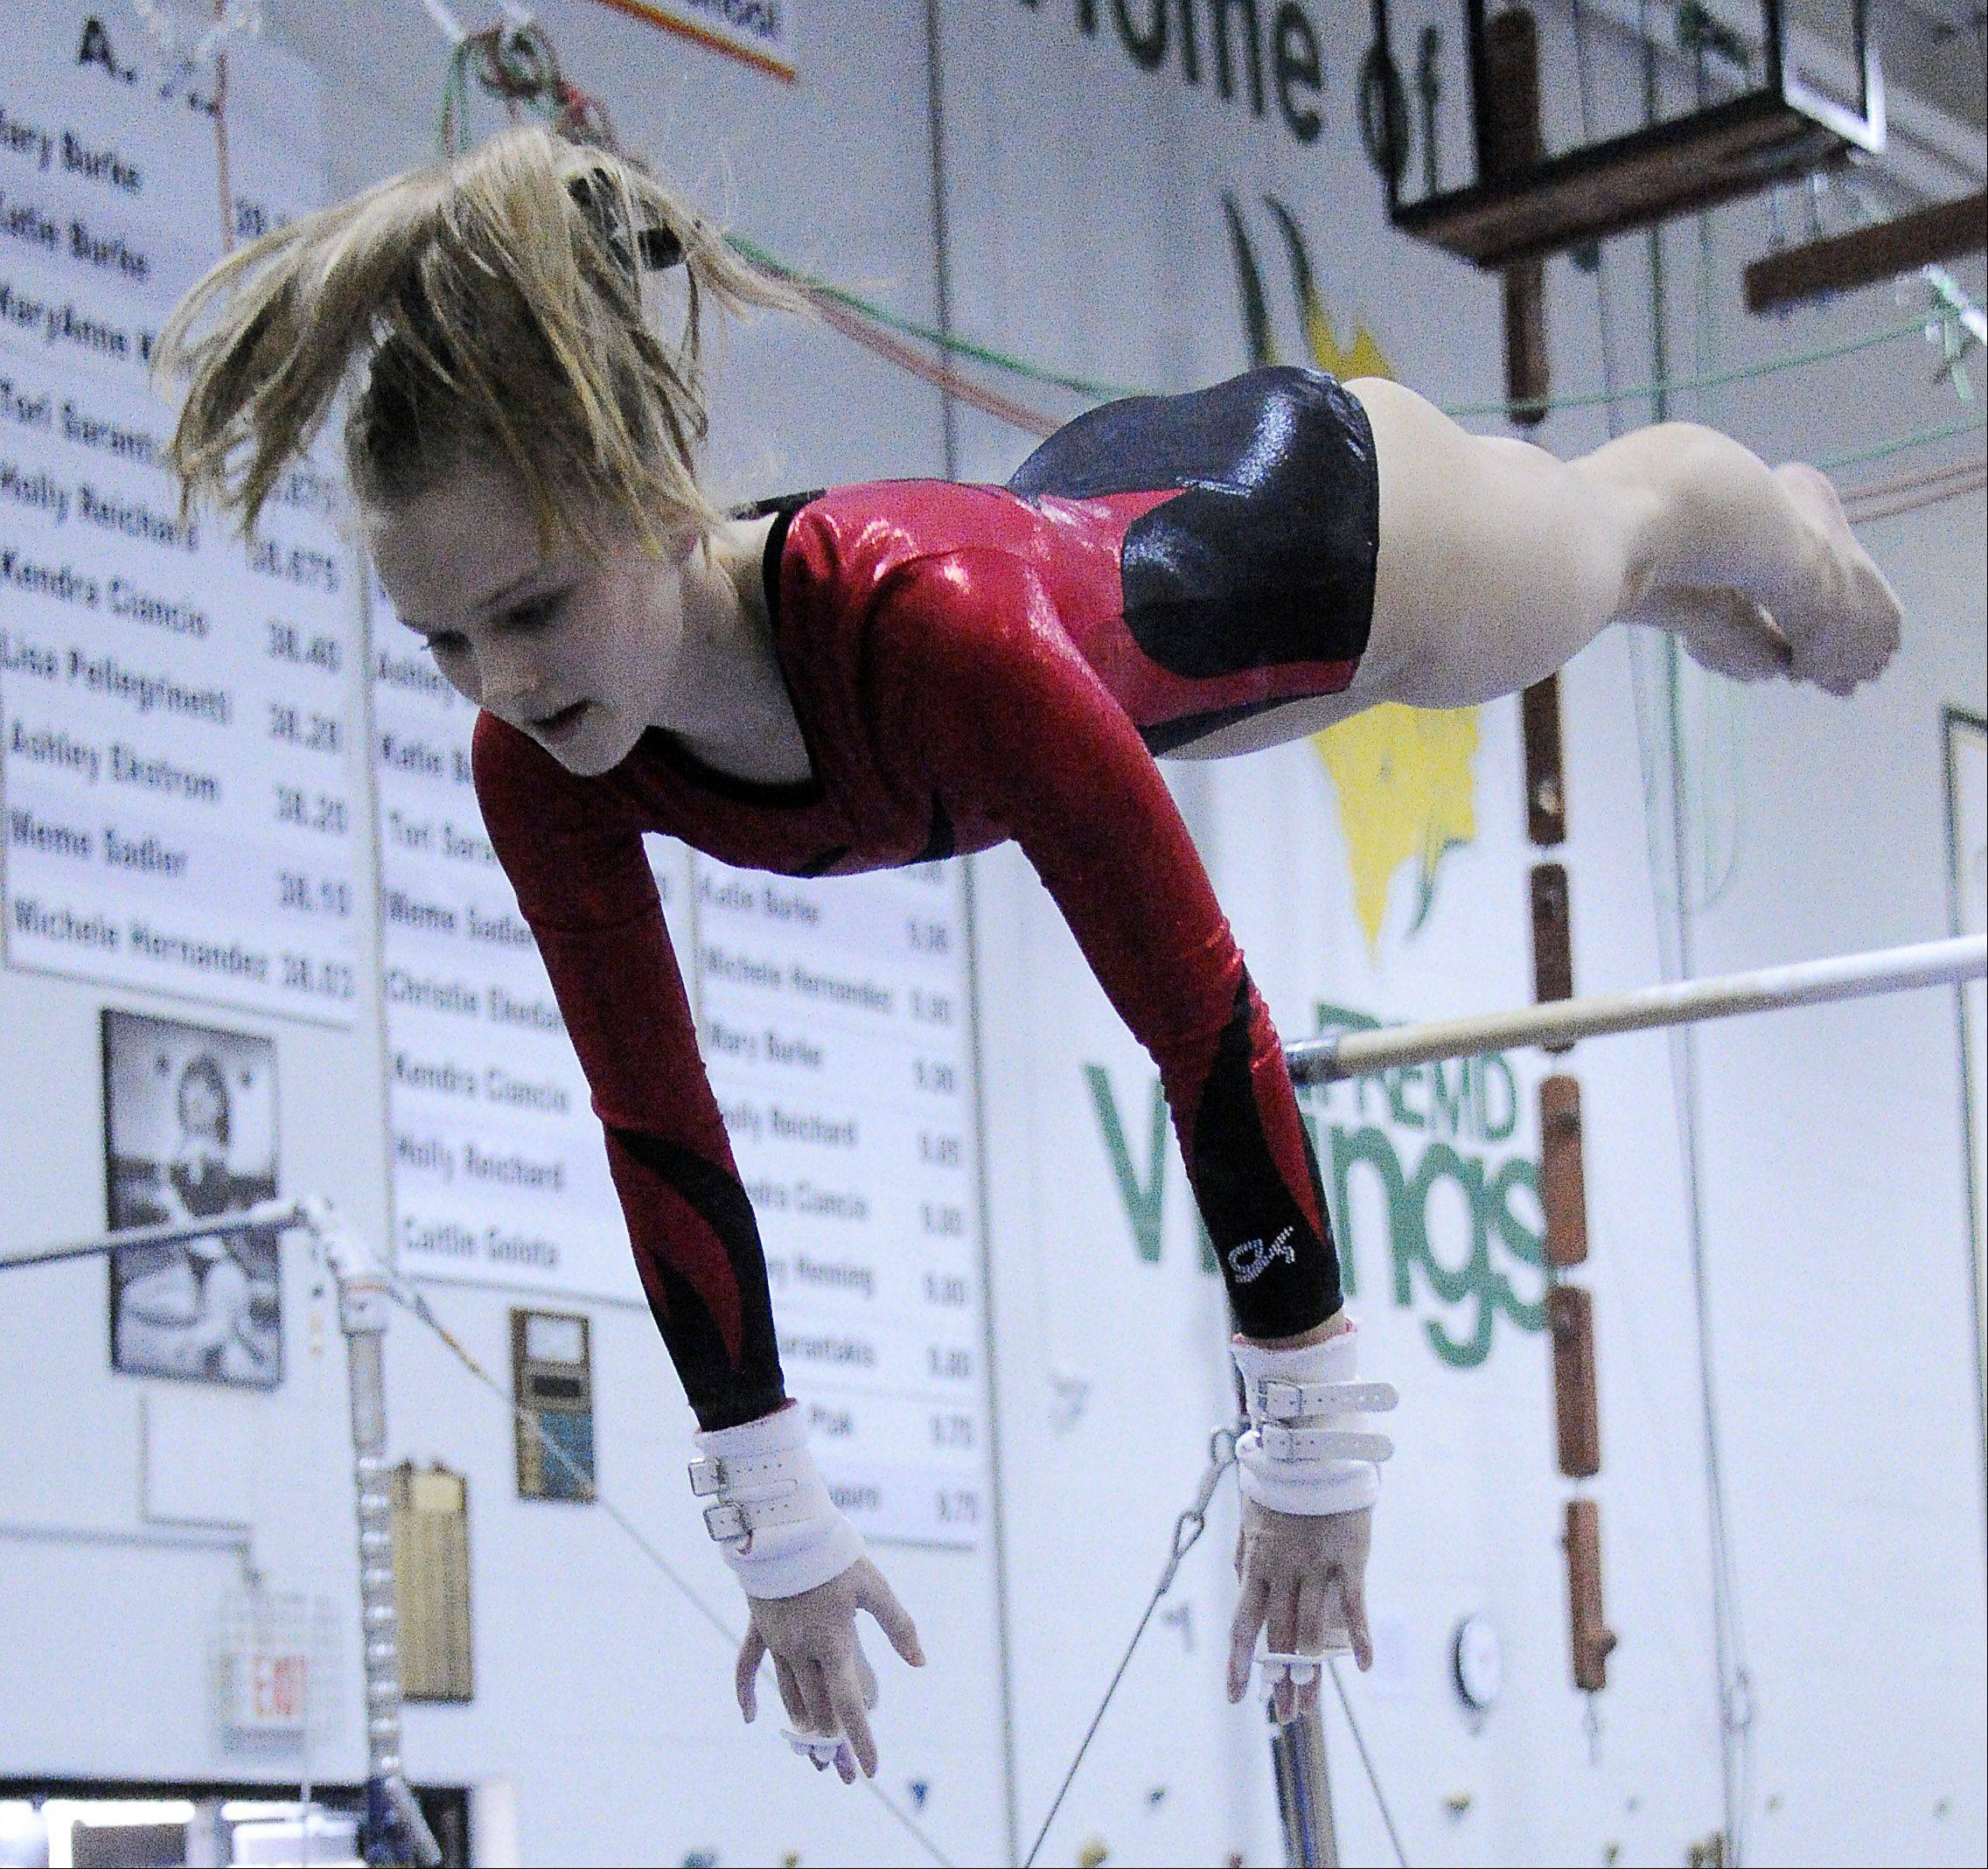 Naperville Central's Vanessa Henry on her bars dismount at the Fremd Invitational on Saturday.